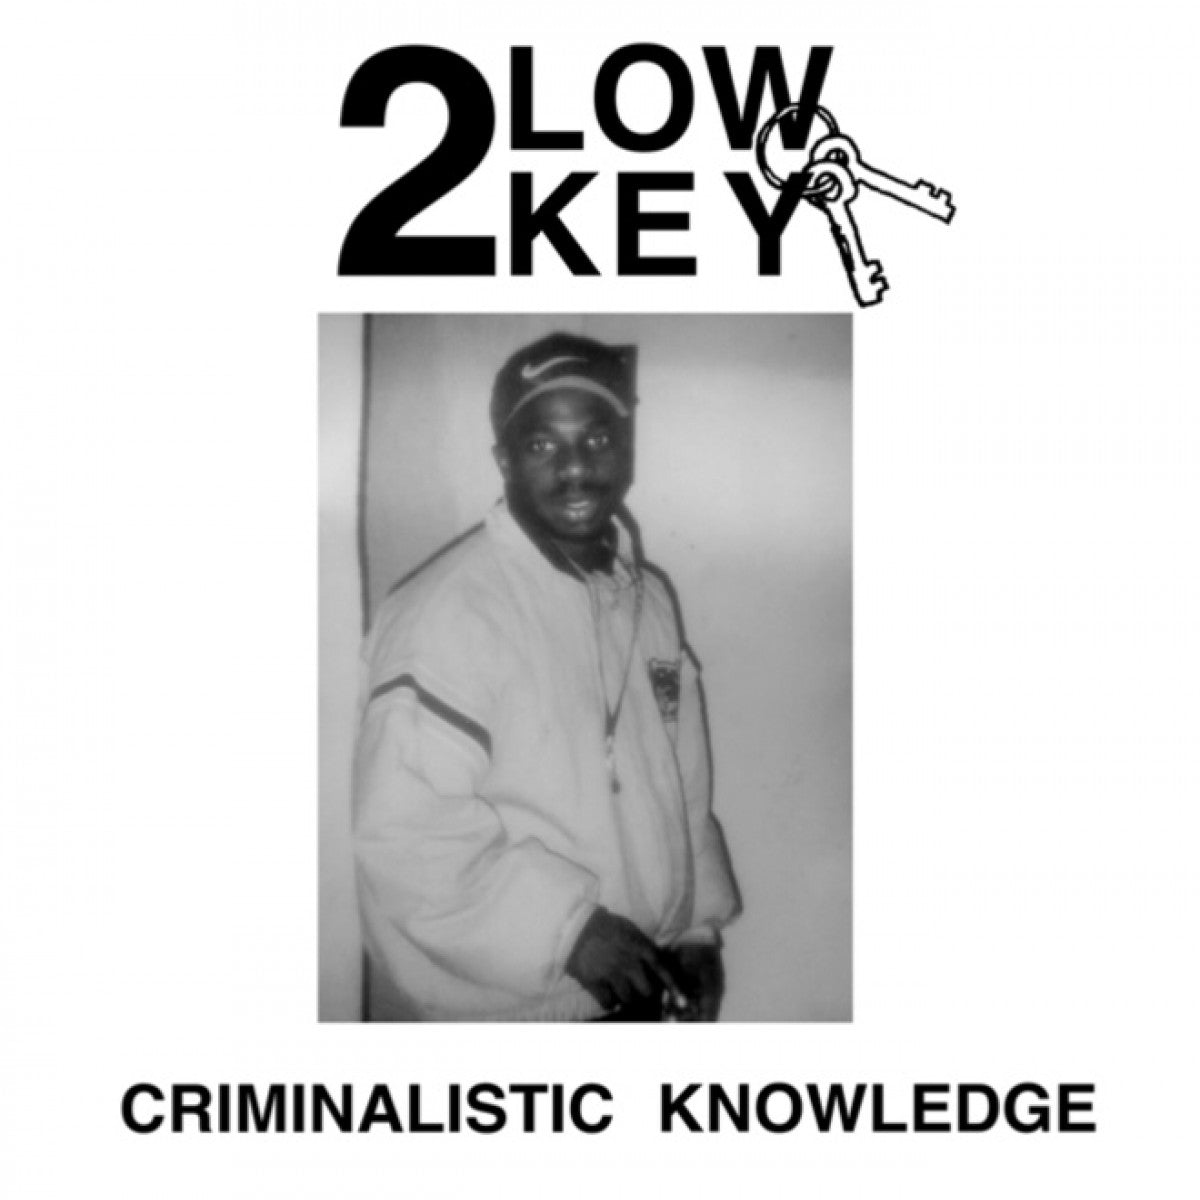 2 Low Key - Criminalistic Knowledge